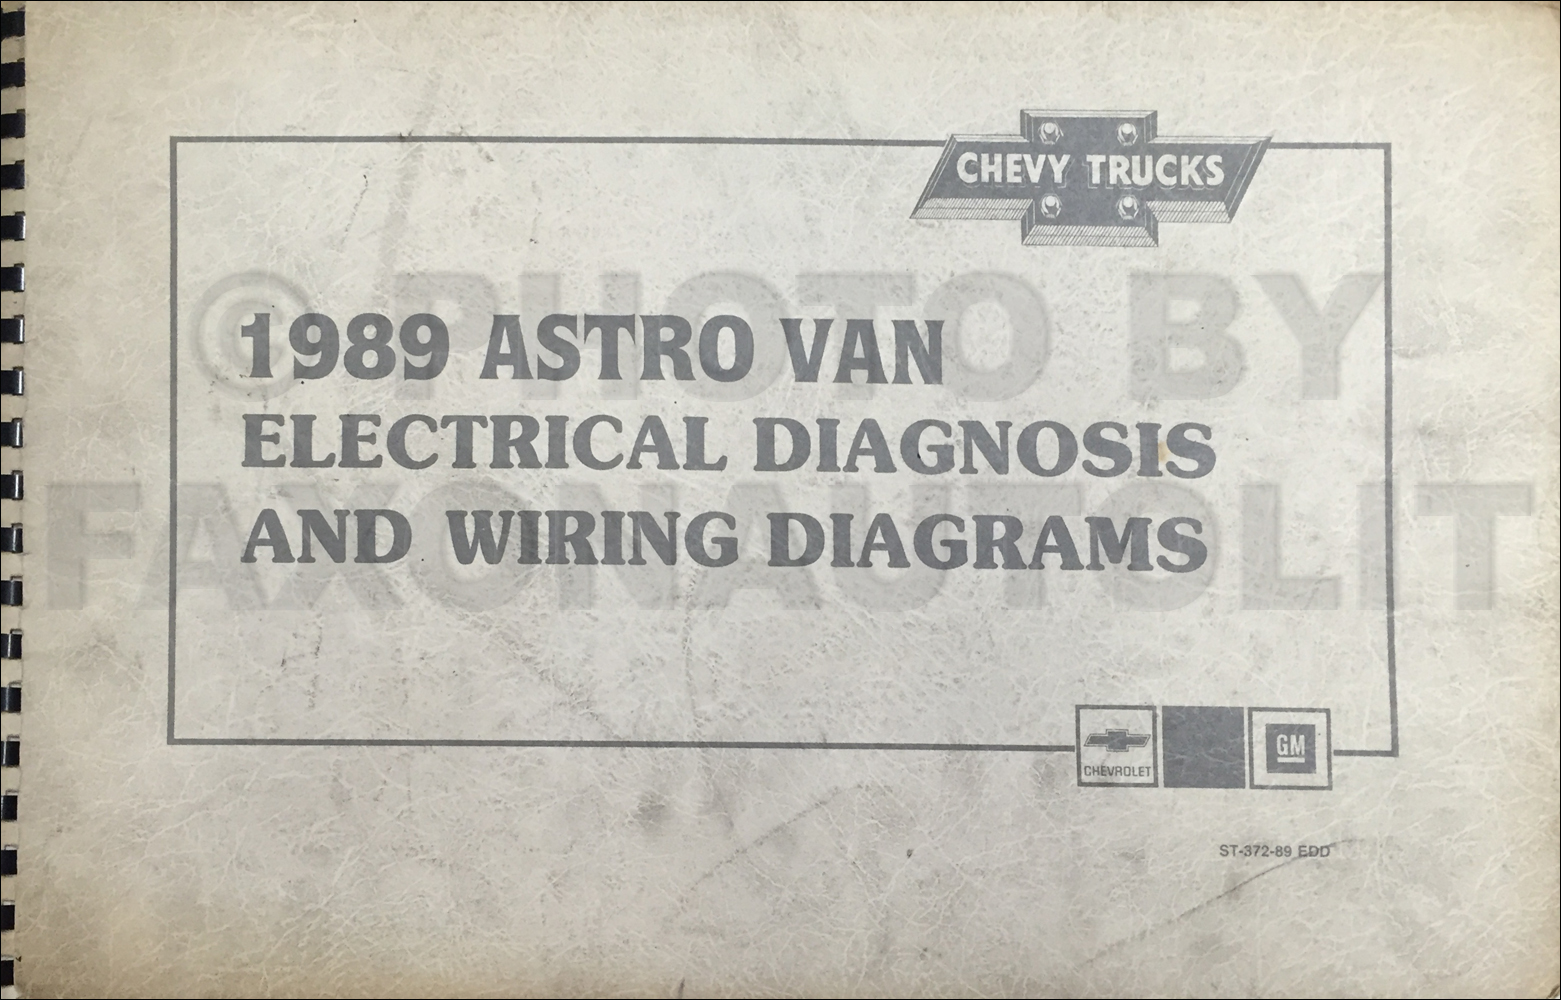 1989 Chevrolet Astro Van Repair Shop Manual Original